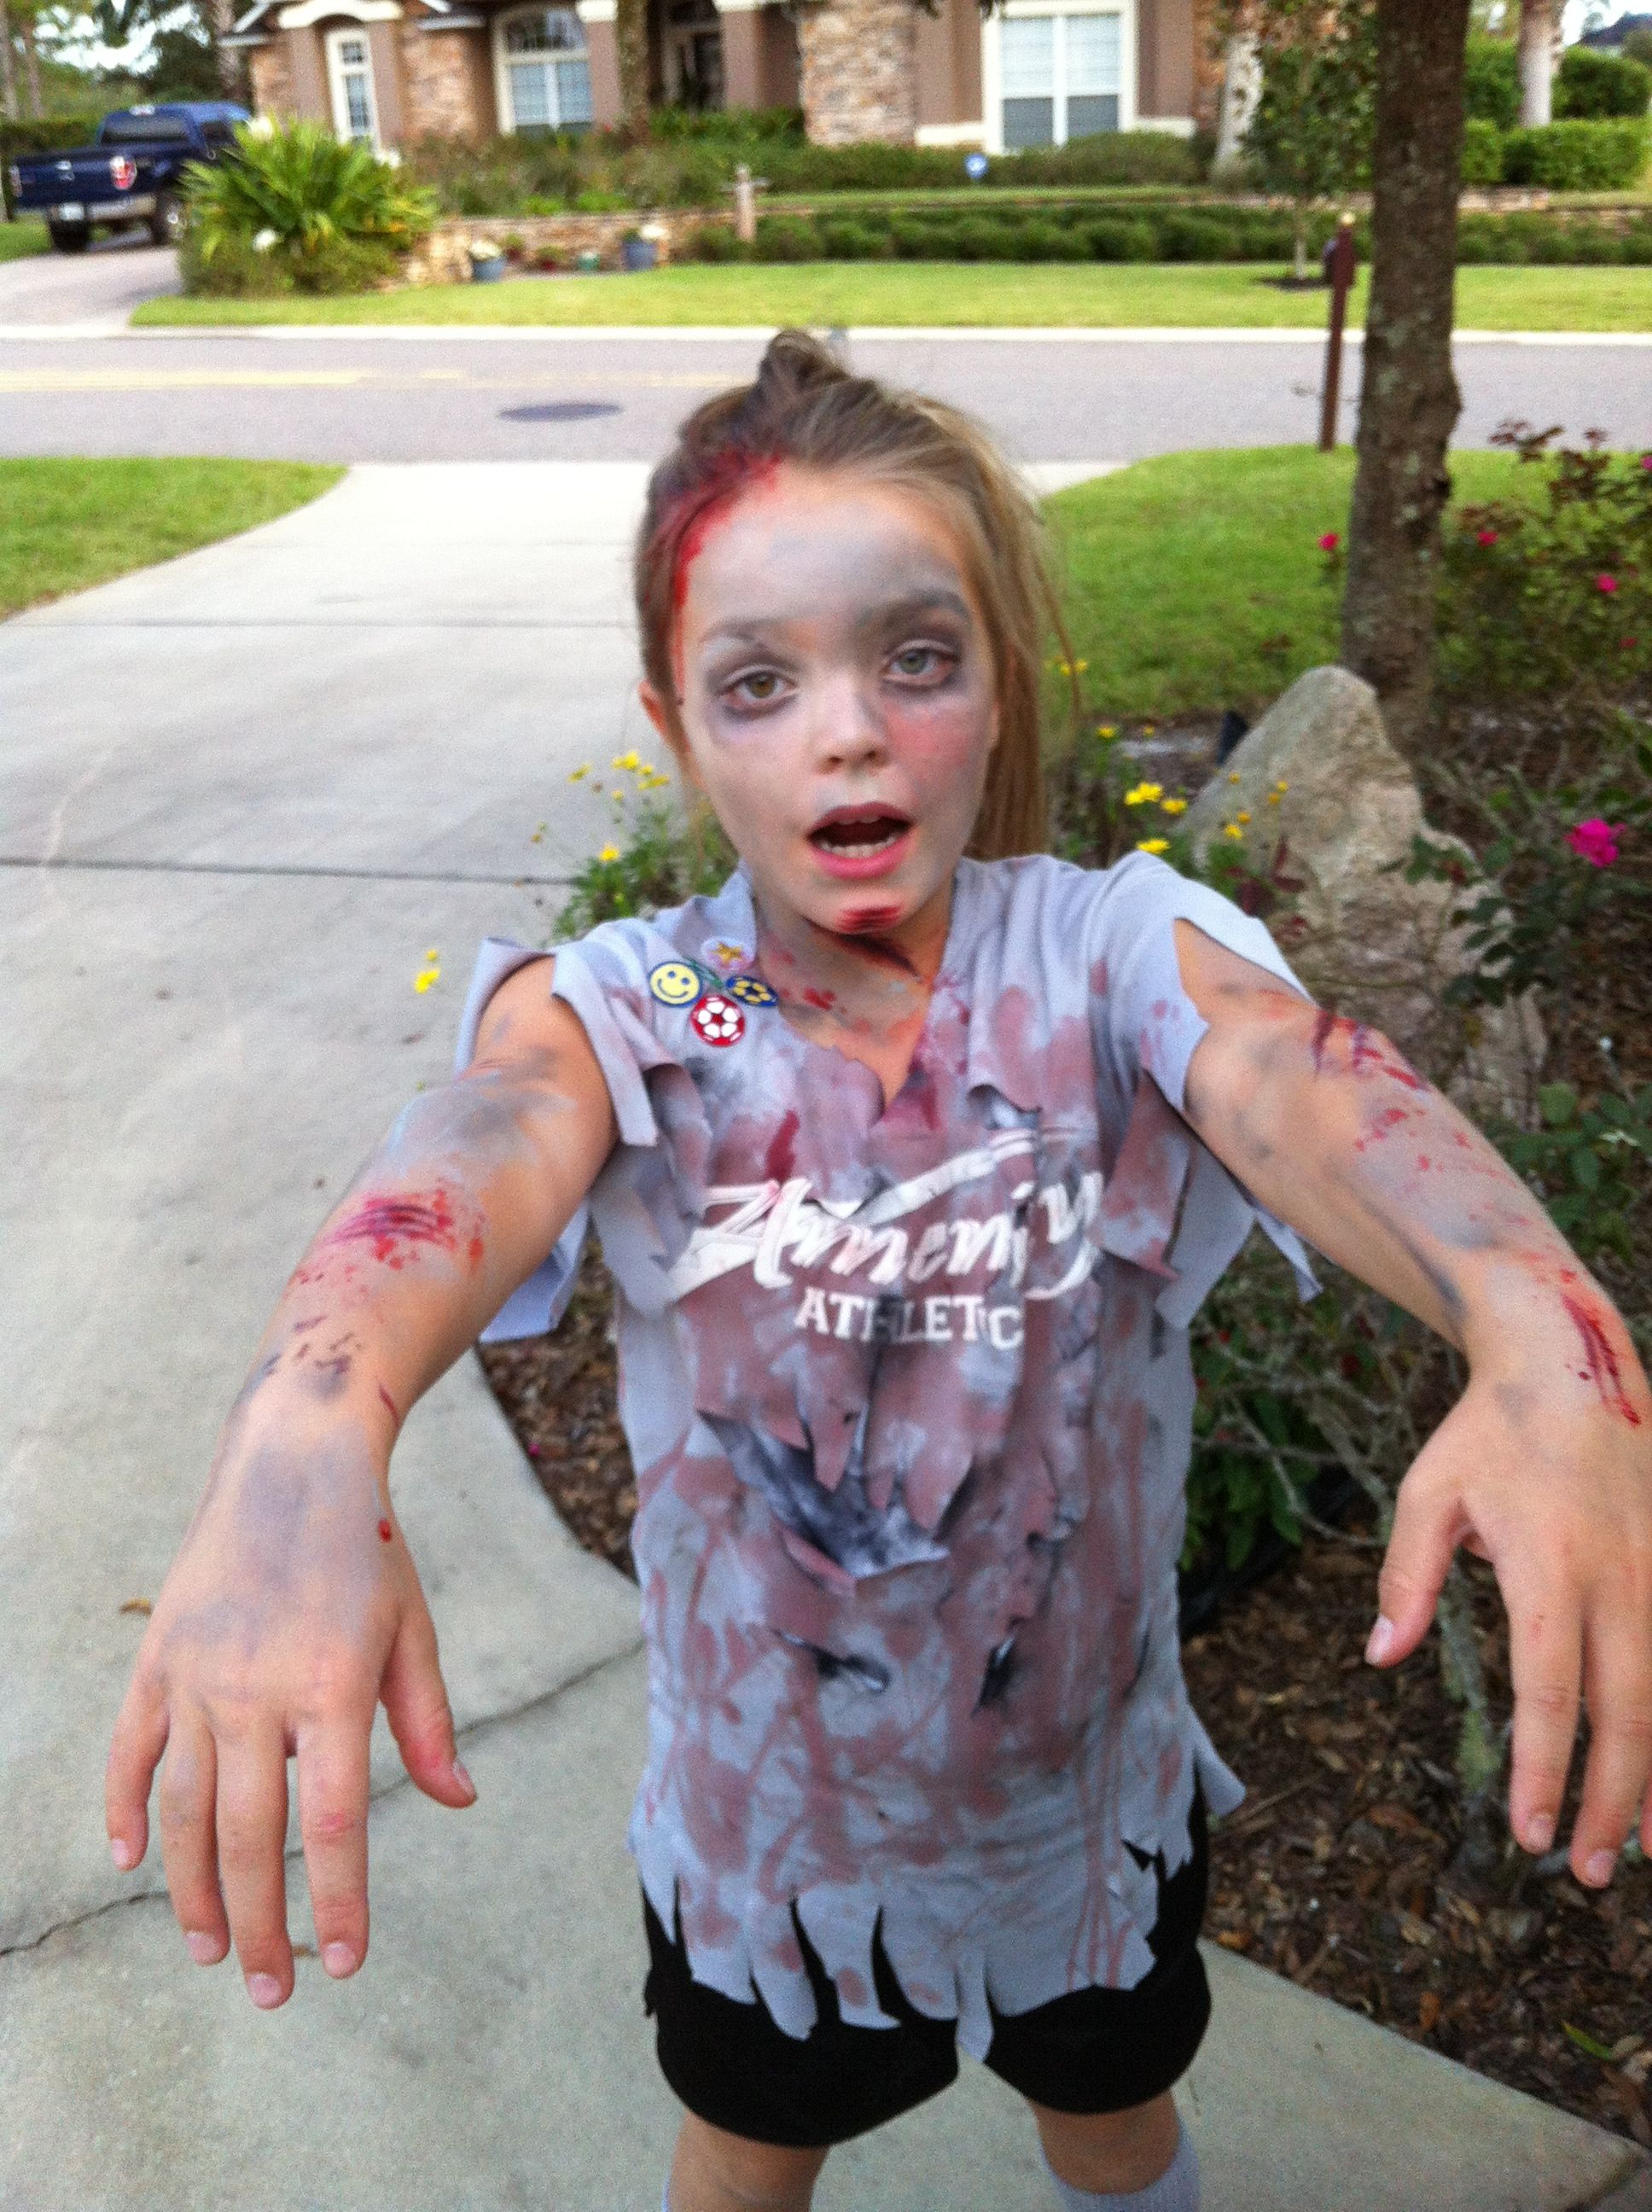 Zombie Soccer Player Zombie Costume Kids Halloween Costumes For Girls Baby Girl Halloween Costumes